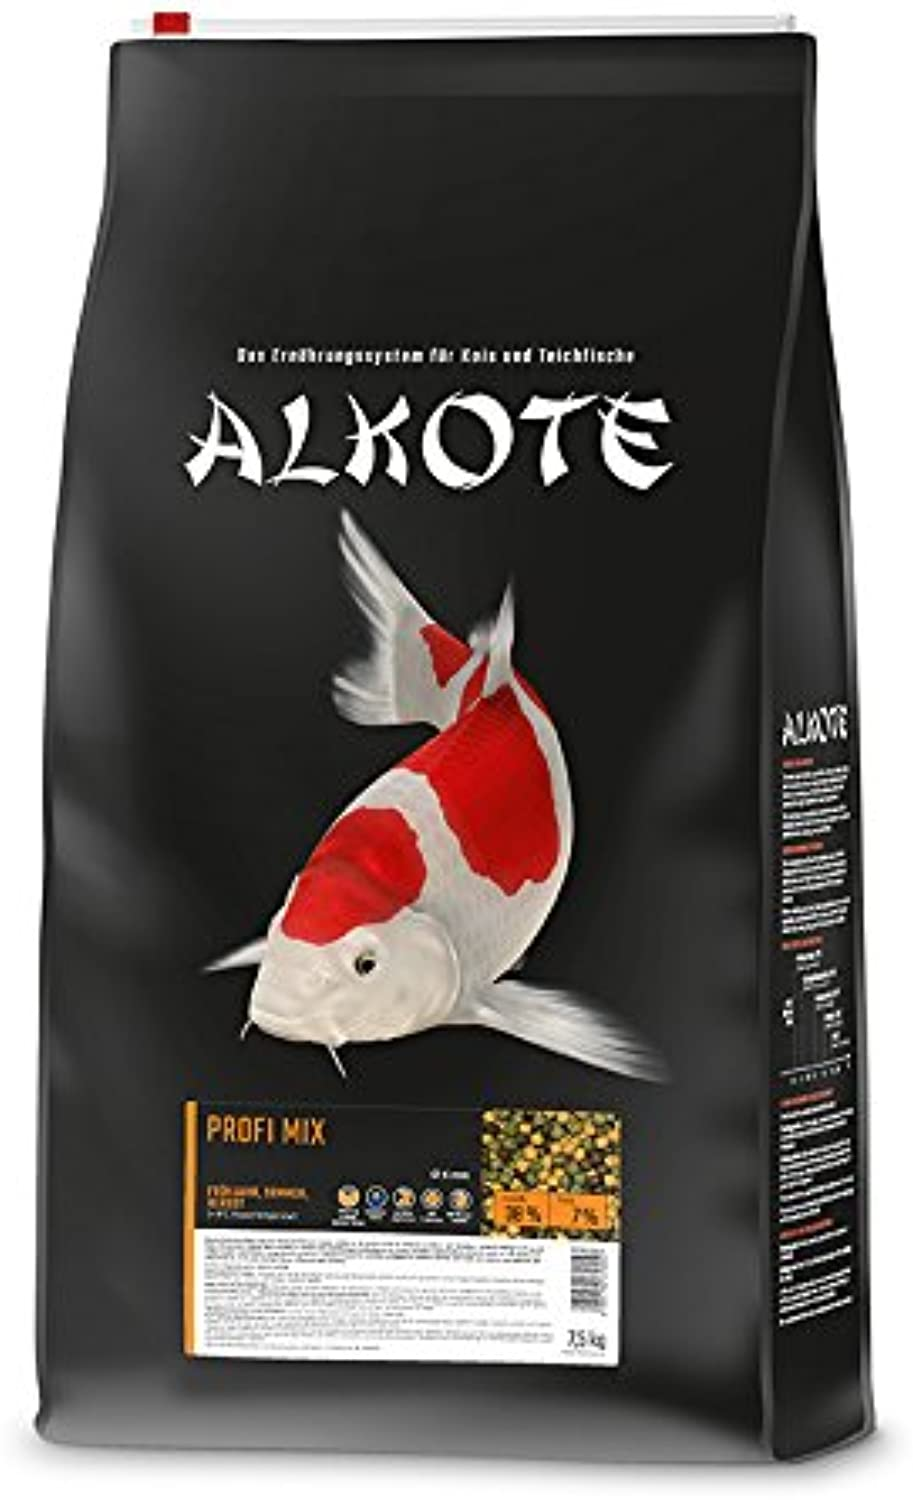 ALKOTE professional mix, higherenergy main food for koi, springsummerautumn, floating pellets, 6mm, 7.5 kg